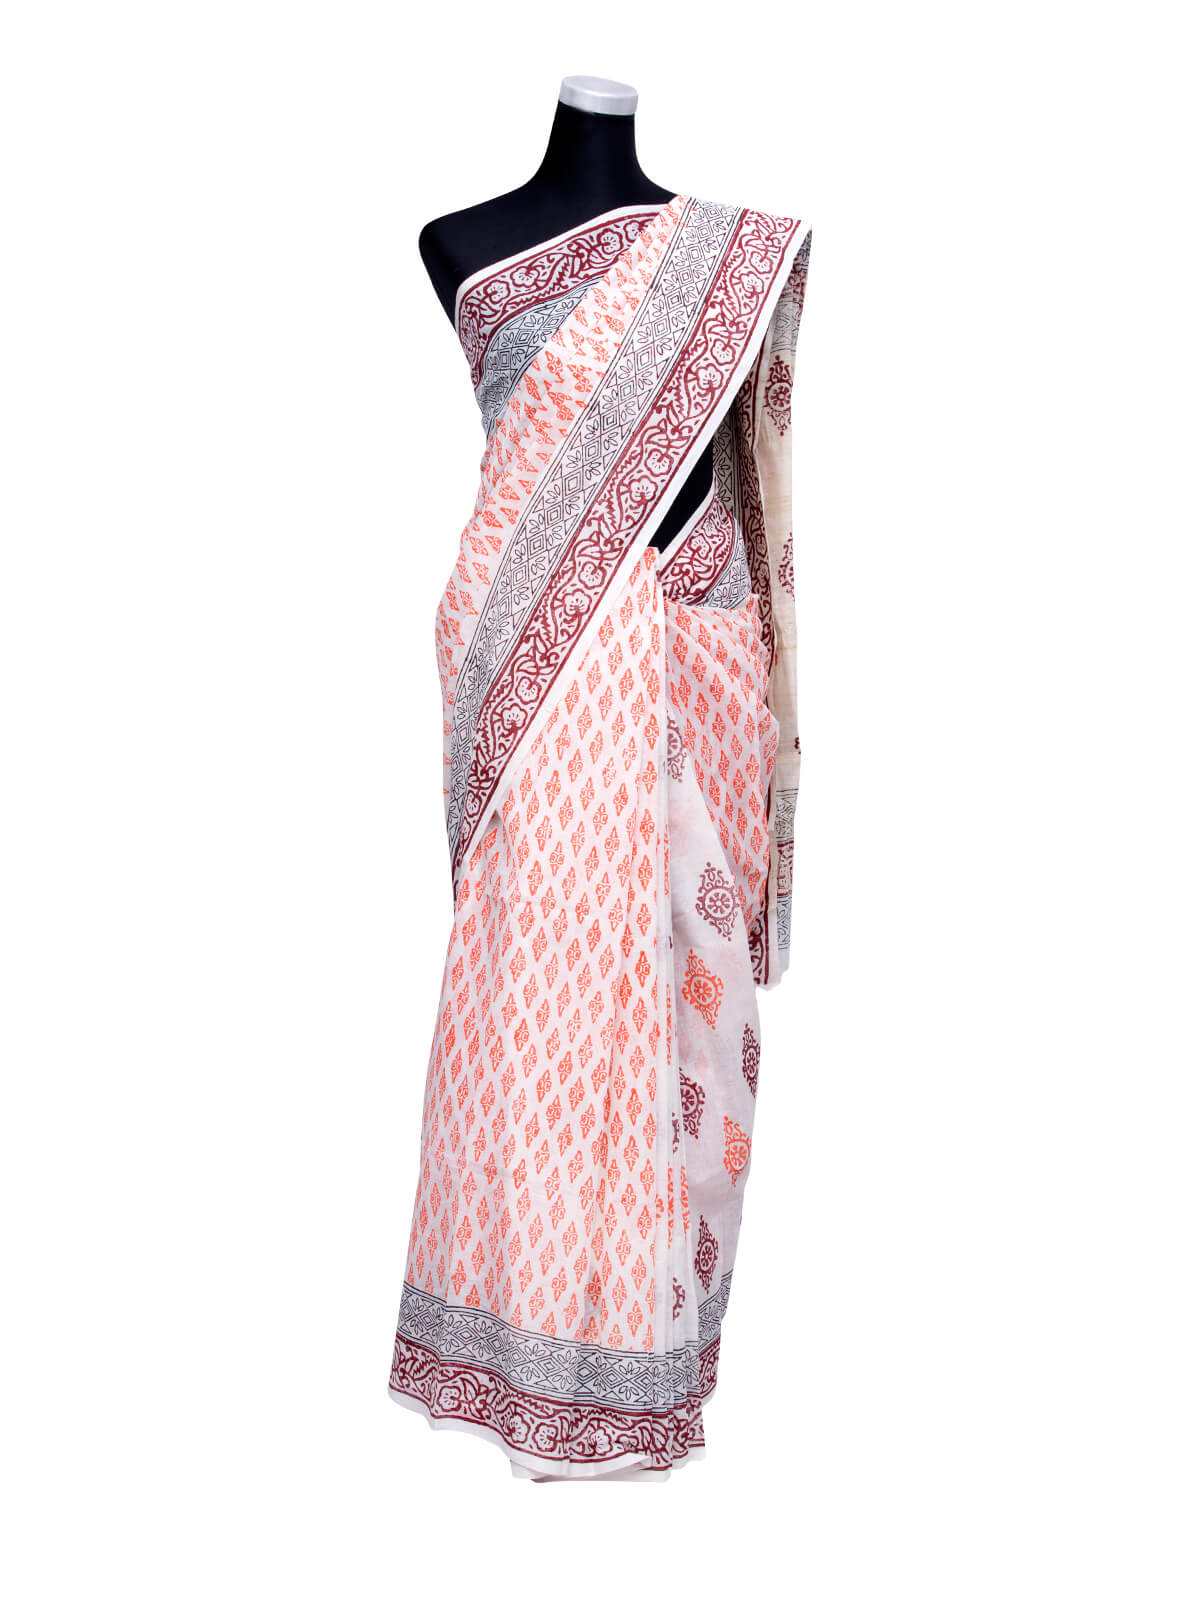 White Handloom Cotton Saree